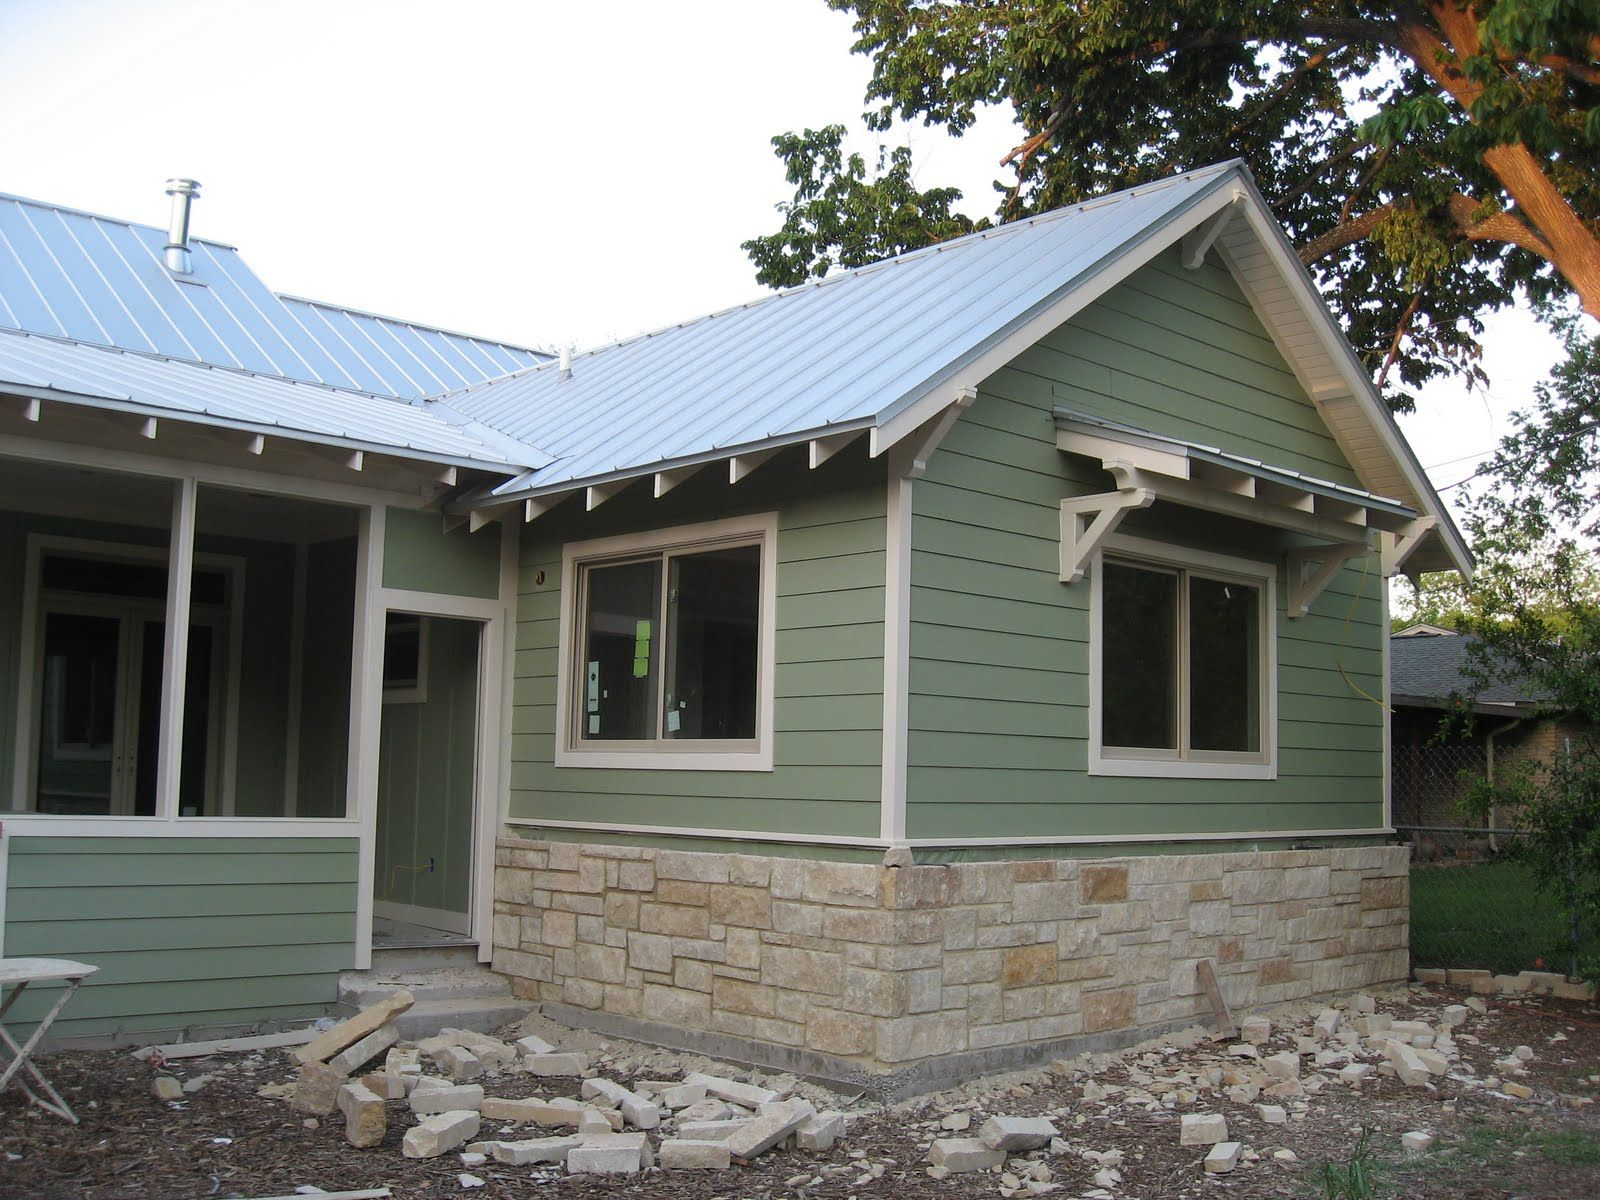 Paint Fully Slow Exterior Paint Colors For House Sage Green House Green Exterior Paints